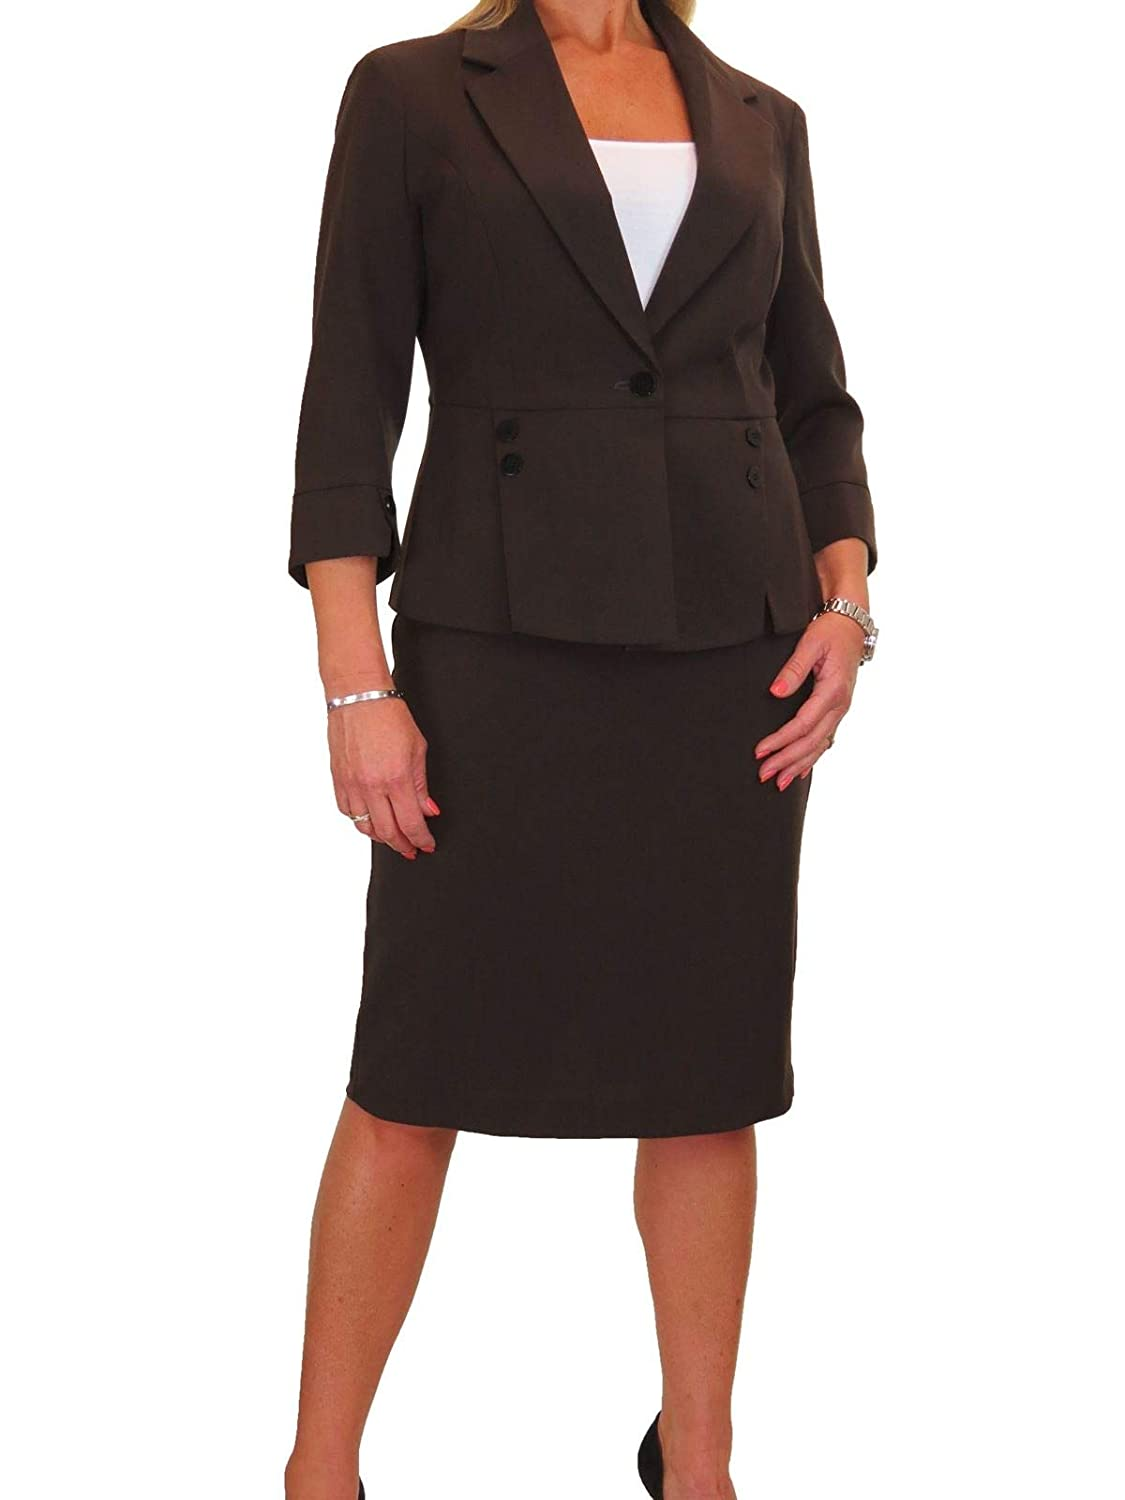 Brown ICE Fully Lined Washable Designer Look Business Office Skirt Suit 418